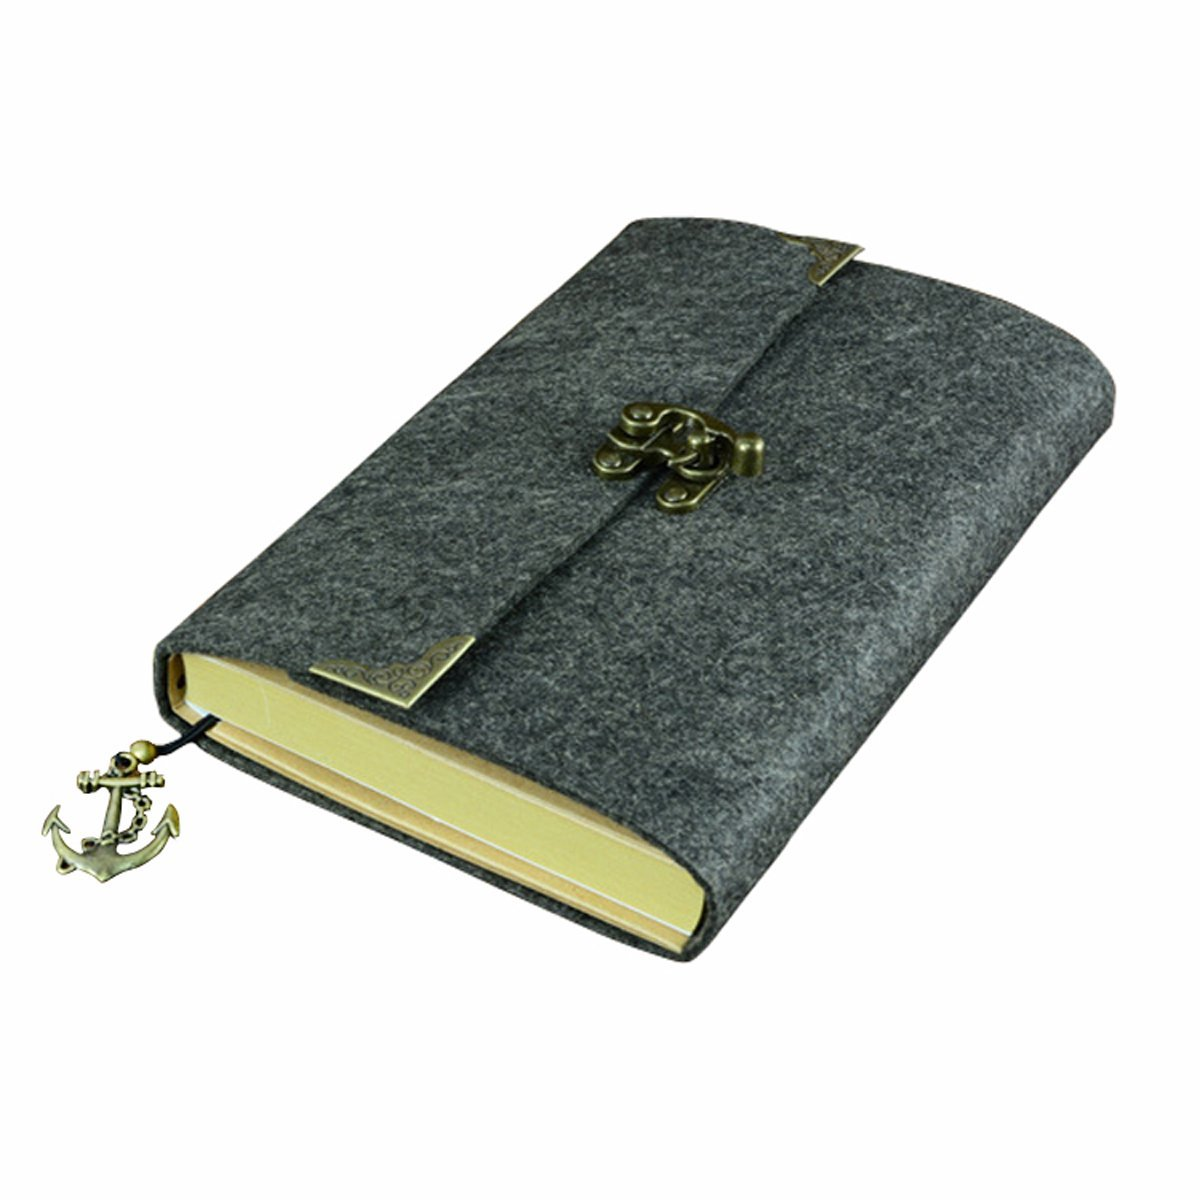 SAYEEC Retro Slim Felt Cover Hardcover Notebook With Bronze Lock - Lined Diary Travel Writing Journal Drawing Sketchbook Gray